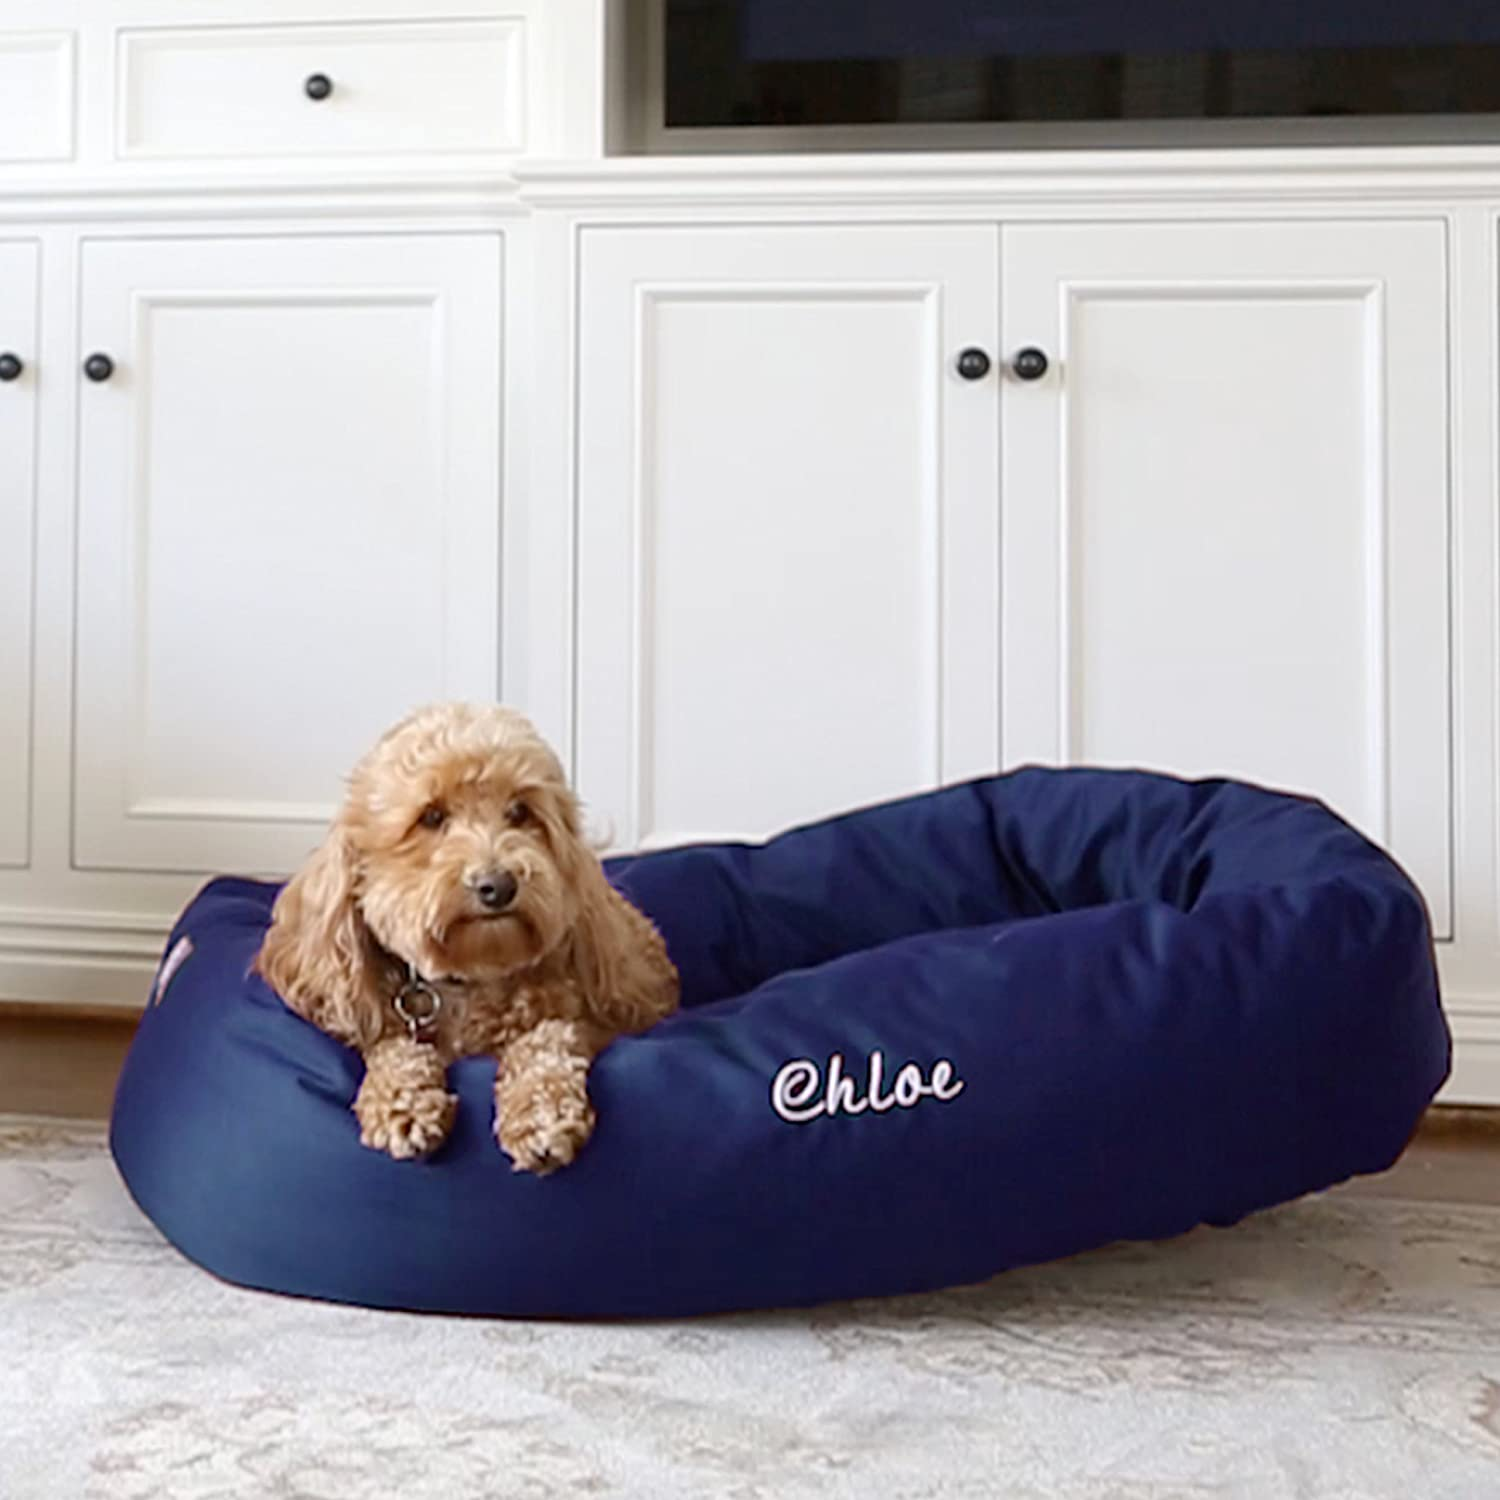 Majestic Pet Personalized Bagel Style Dog Bed - Machine Washable - Soft Comfortable Sleeping Mat - Durable Supportive Cushion - Custom Embroidered Dog Bed and Sizes